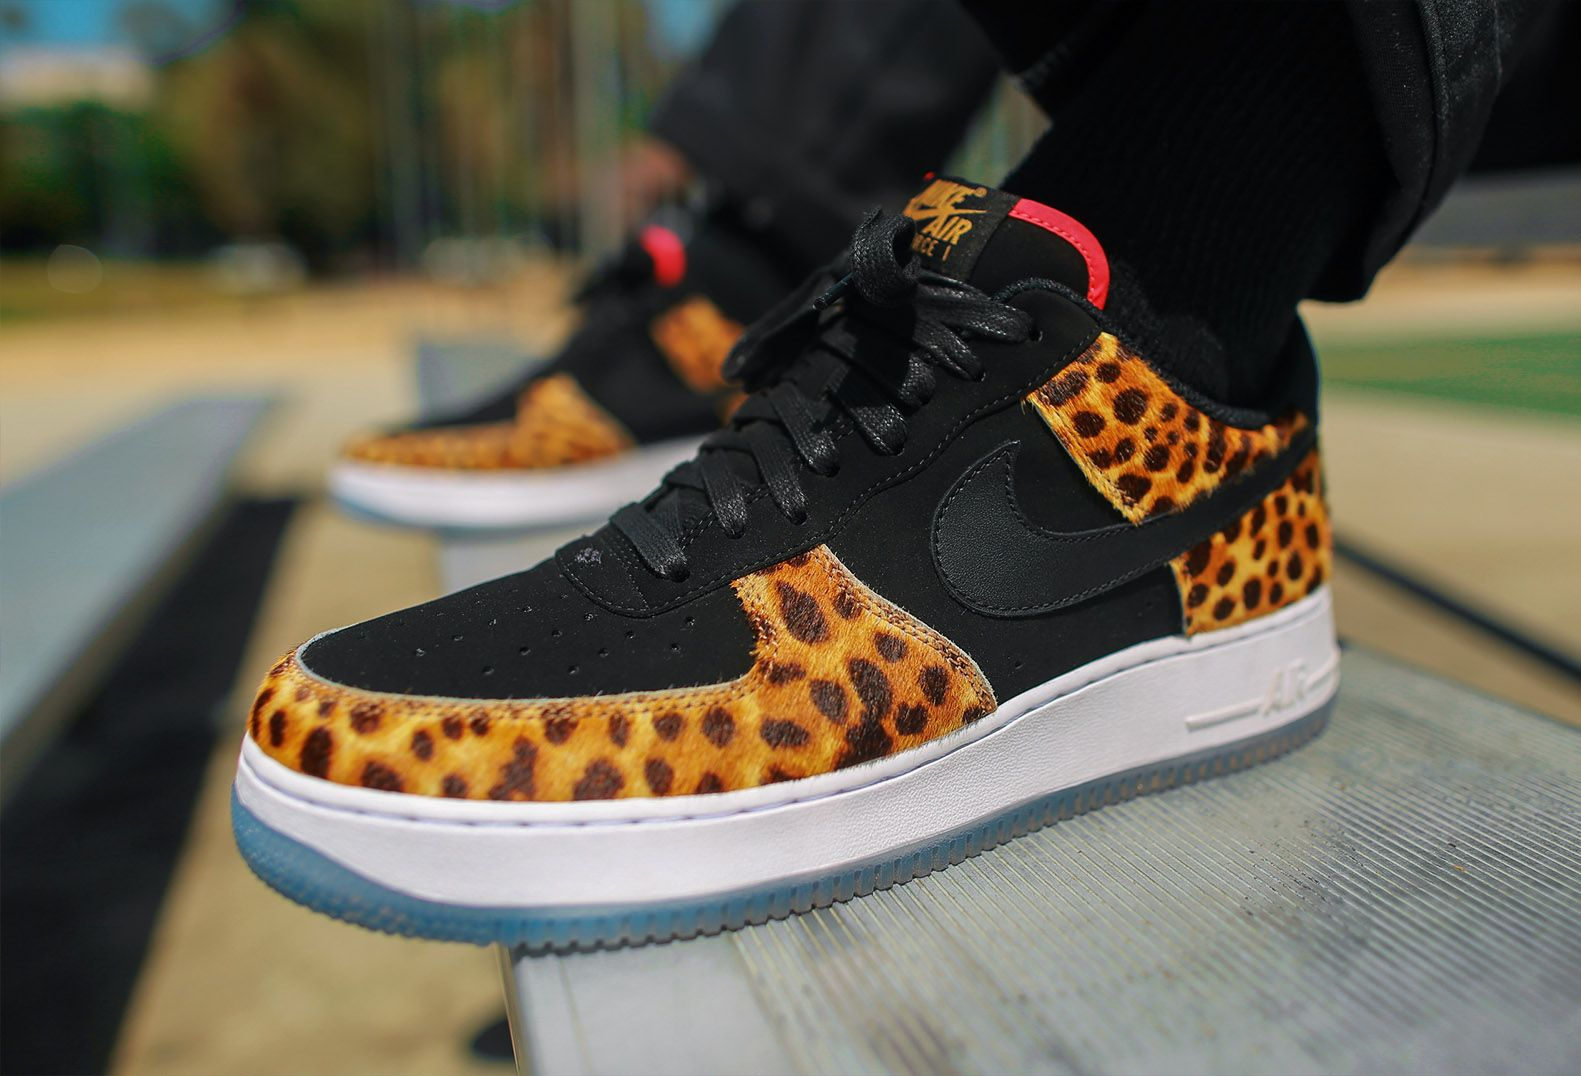 NIKE AIR FORCE 1 07 LHM SANER MASTER JAGUAR LEOPARD AH7738